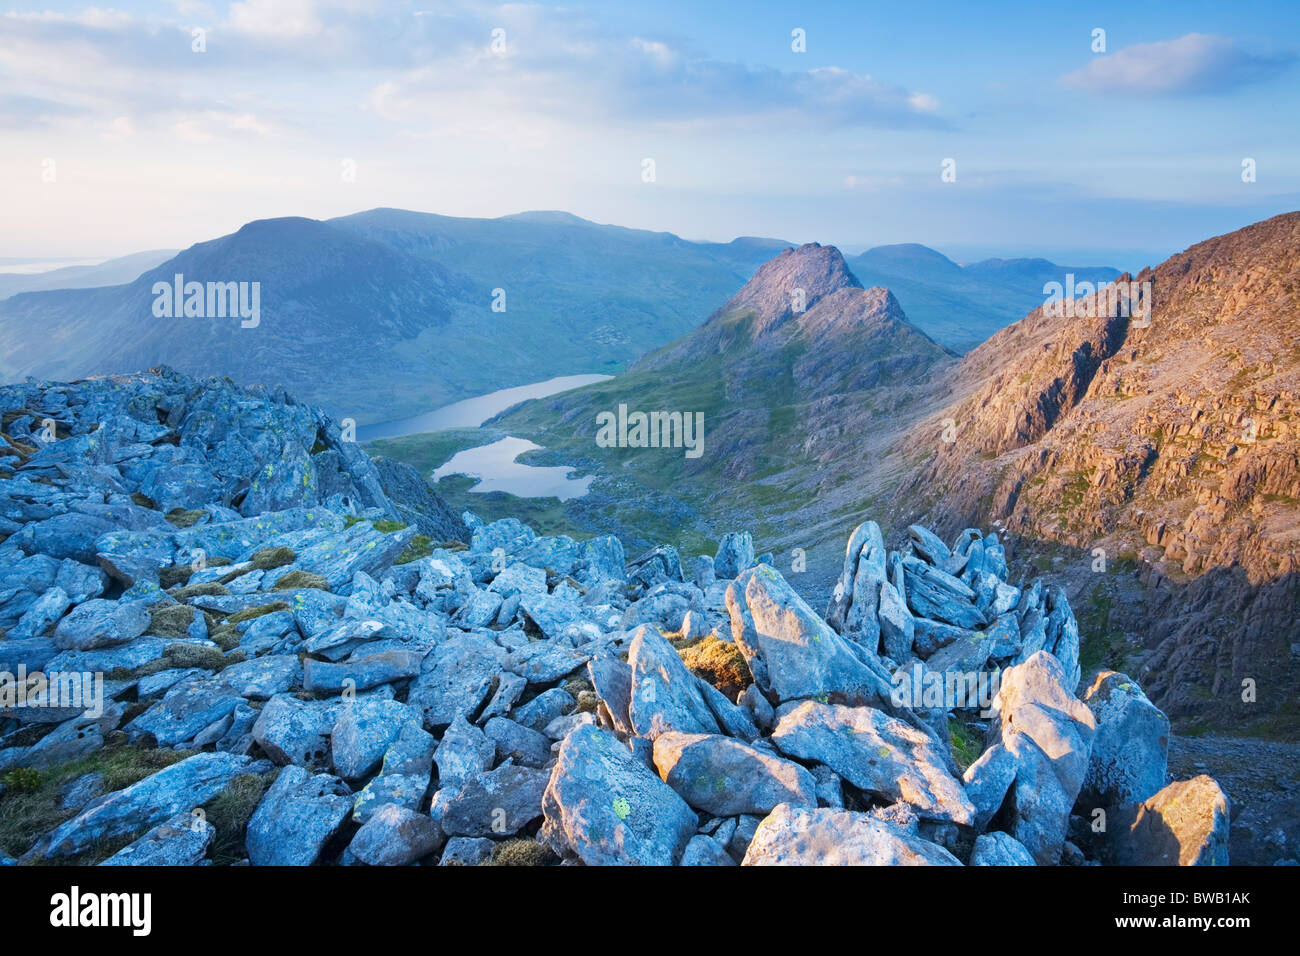 Mt Tryfan and the Ogwen Valley from Glyder Fach. Snowdonia National Park. Conwy. Wales. UK. Stock Photo